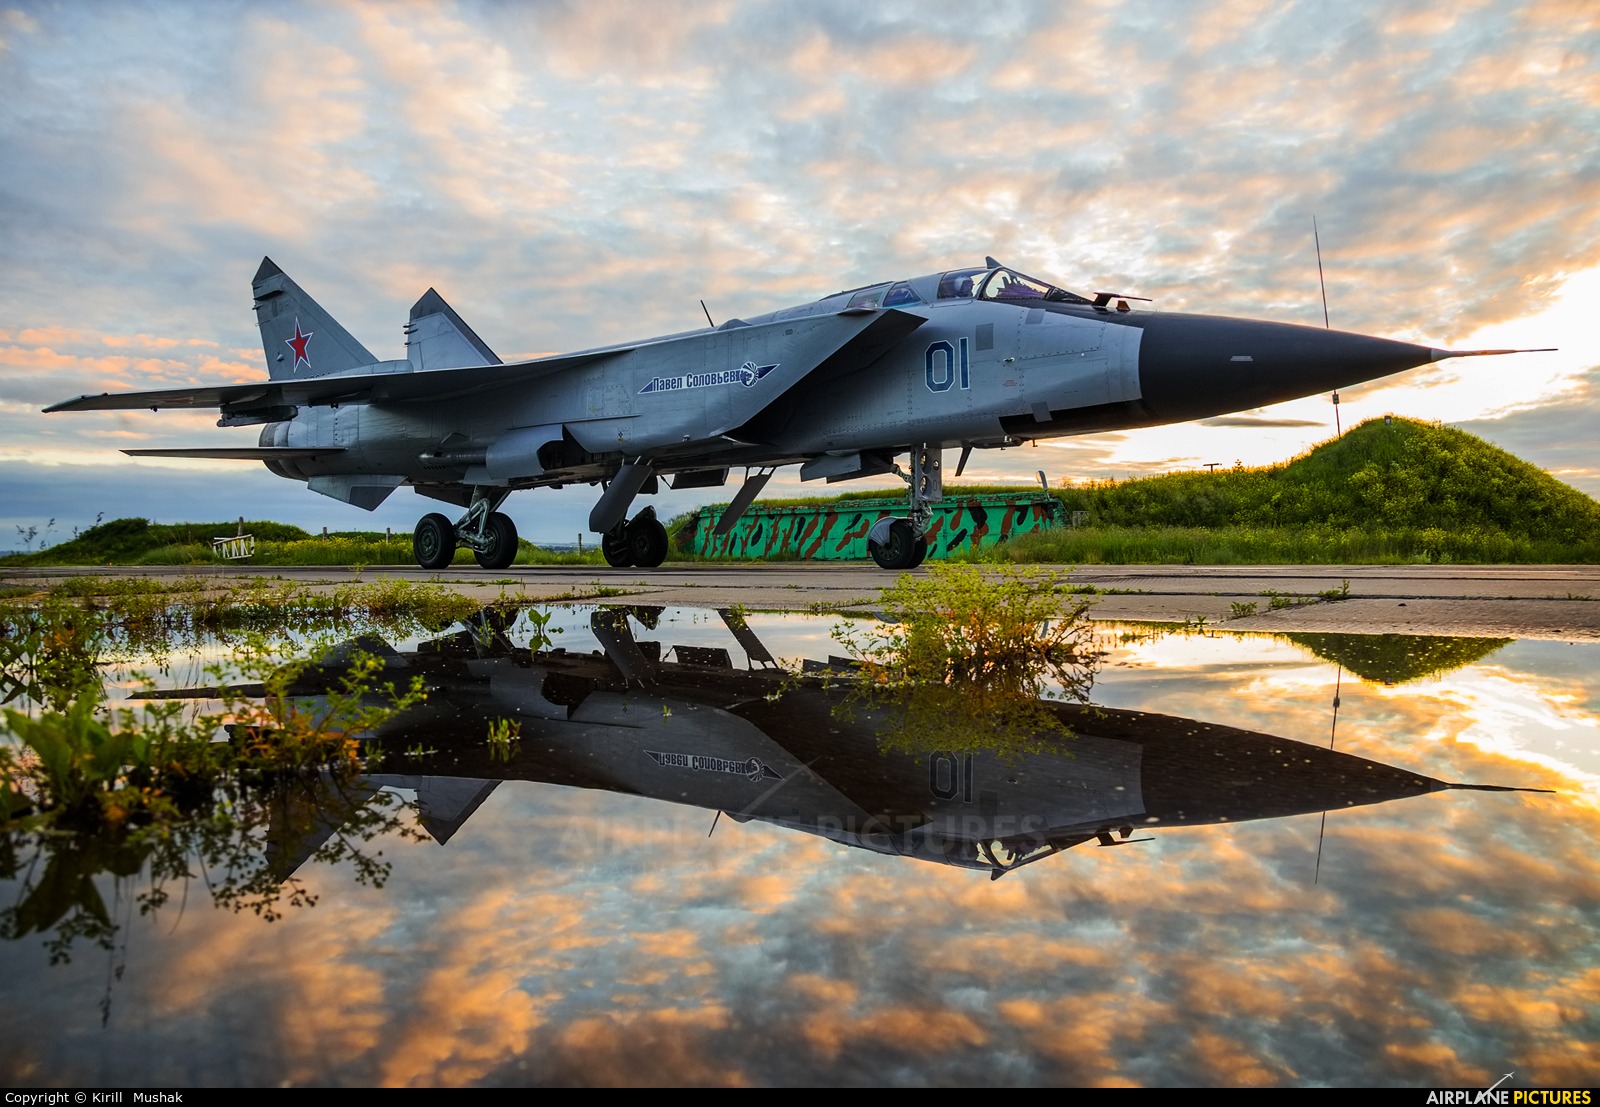 Russia - Air Force 01 aircraft at Undisclosed Location